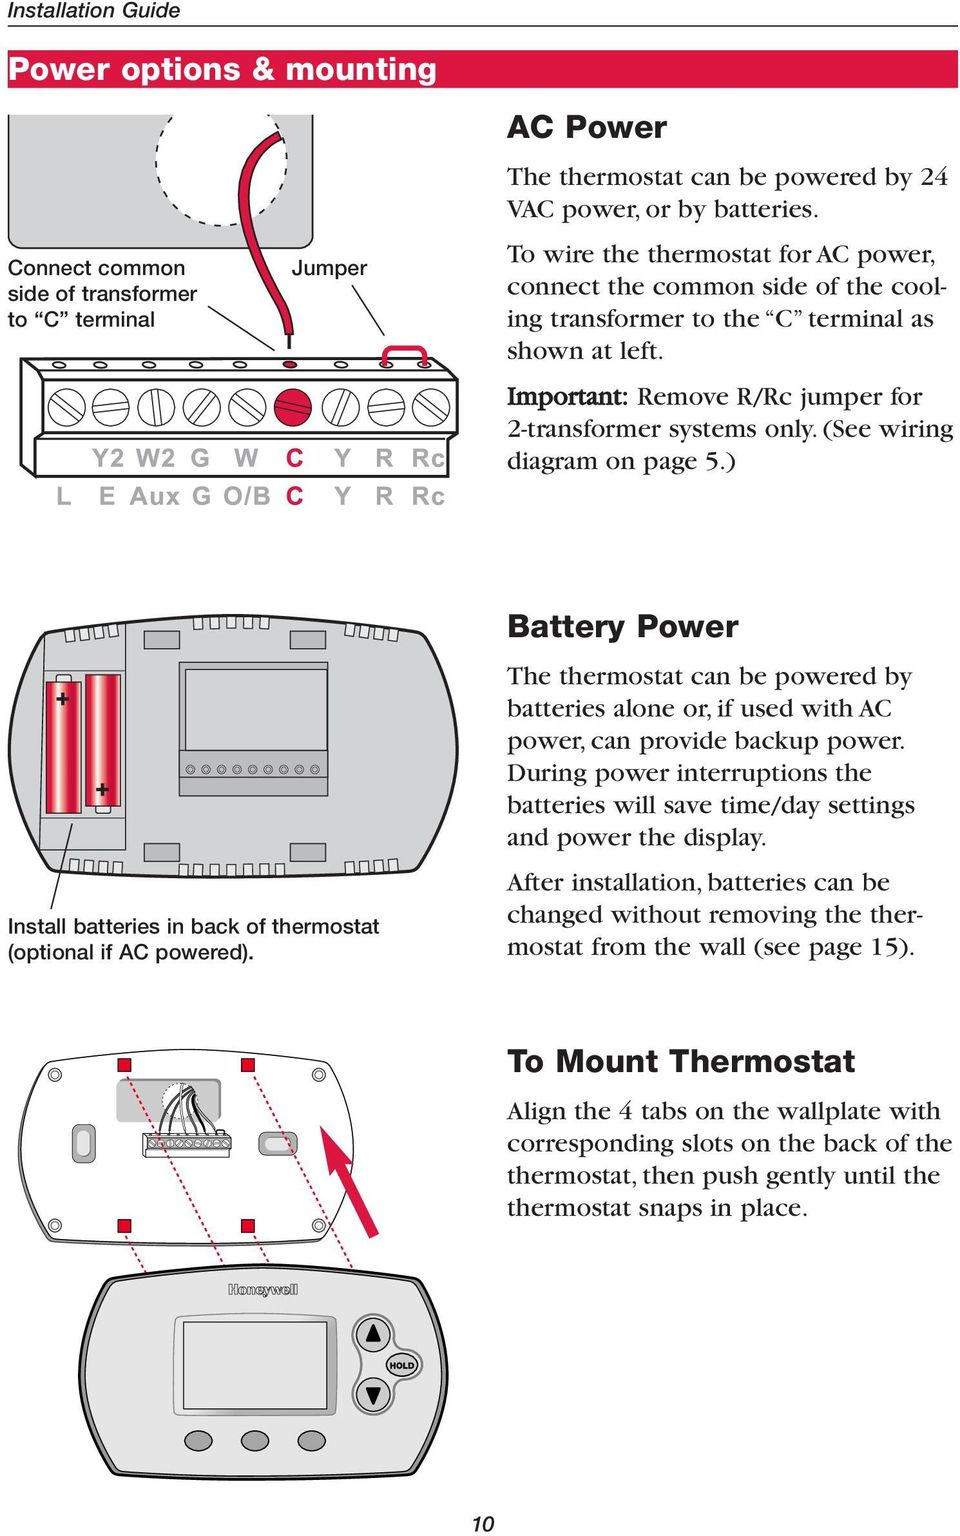 Installation Guide Programmable Thermostat Th6220d Pdf Wiring For See Diagram On Page 5 Install Batteries In Back Of